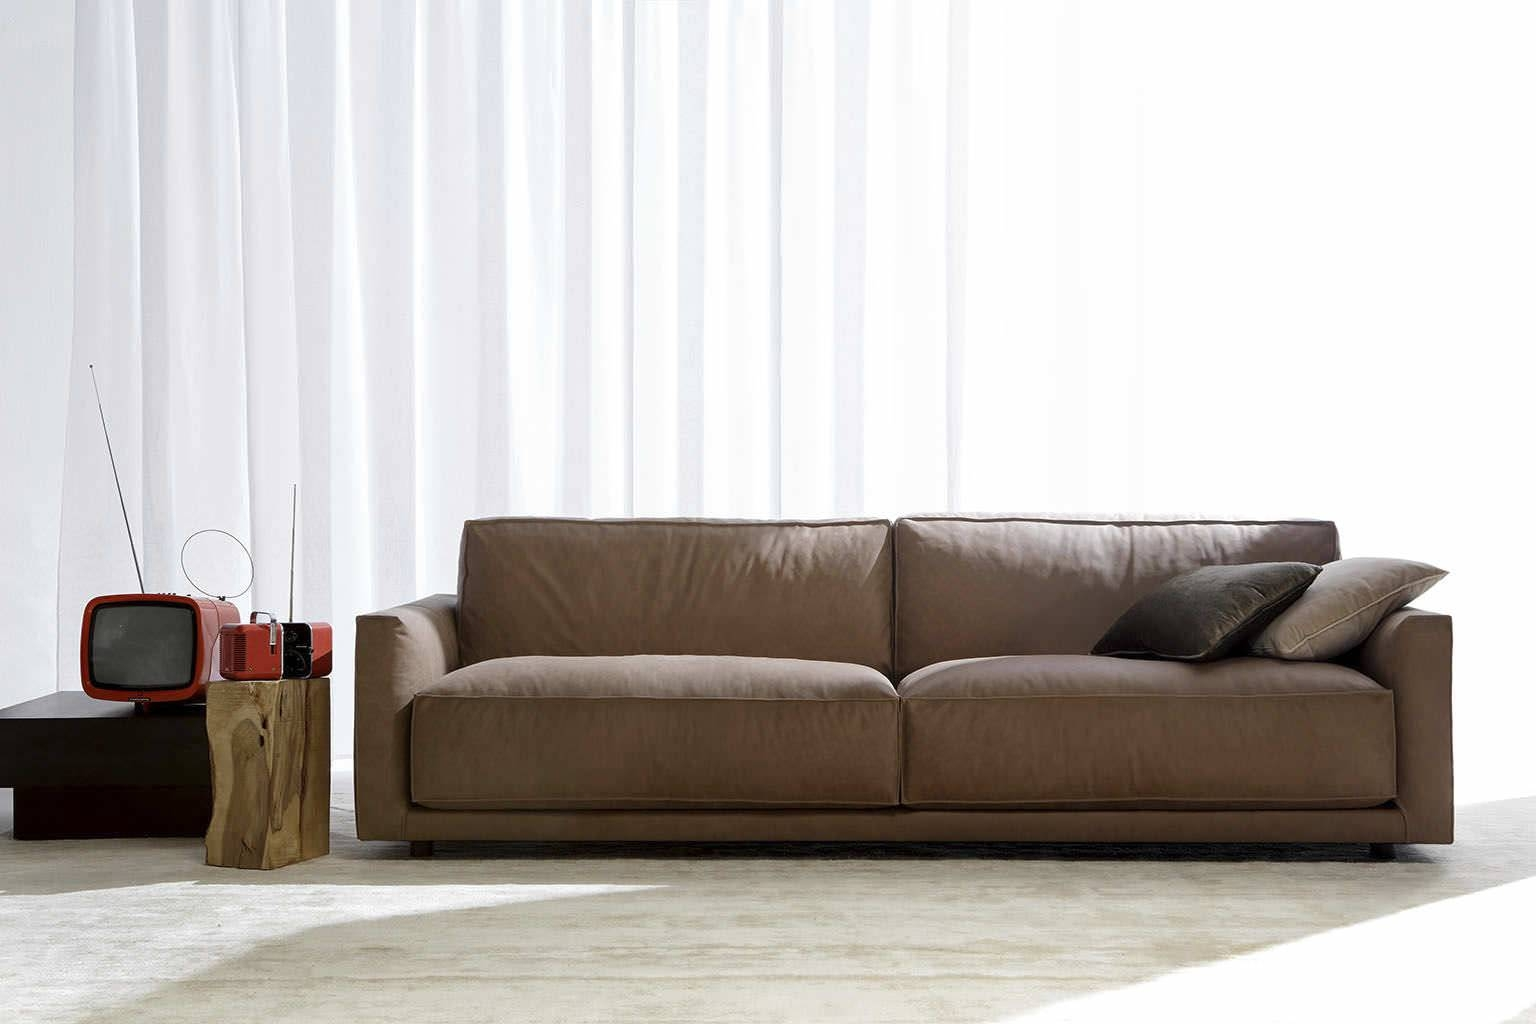 Best Modern Leather Sofa 57 On Sofas And Couches Set With Modern throughout Modern Sofas (Image 3 of 15)